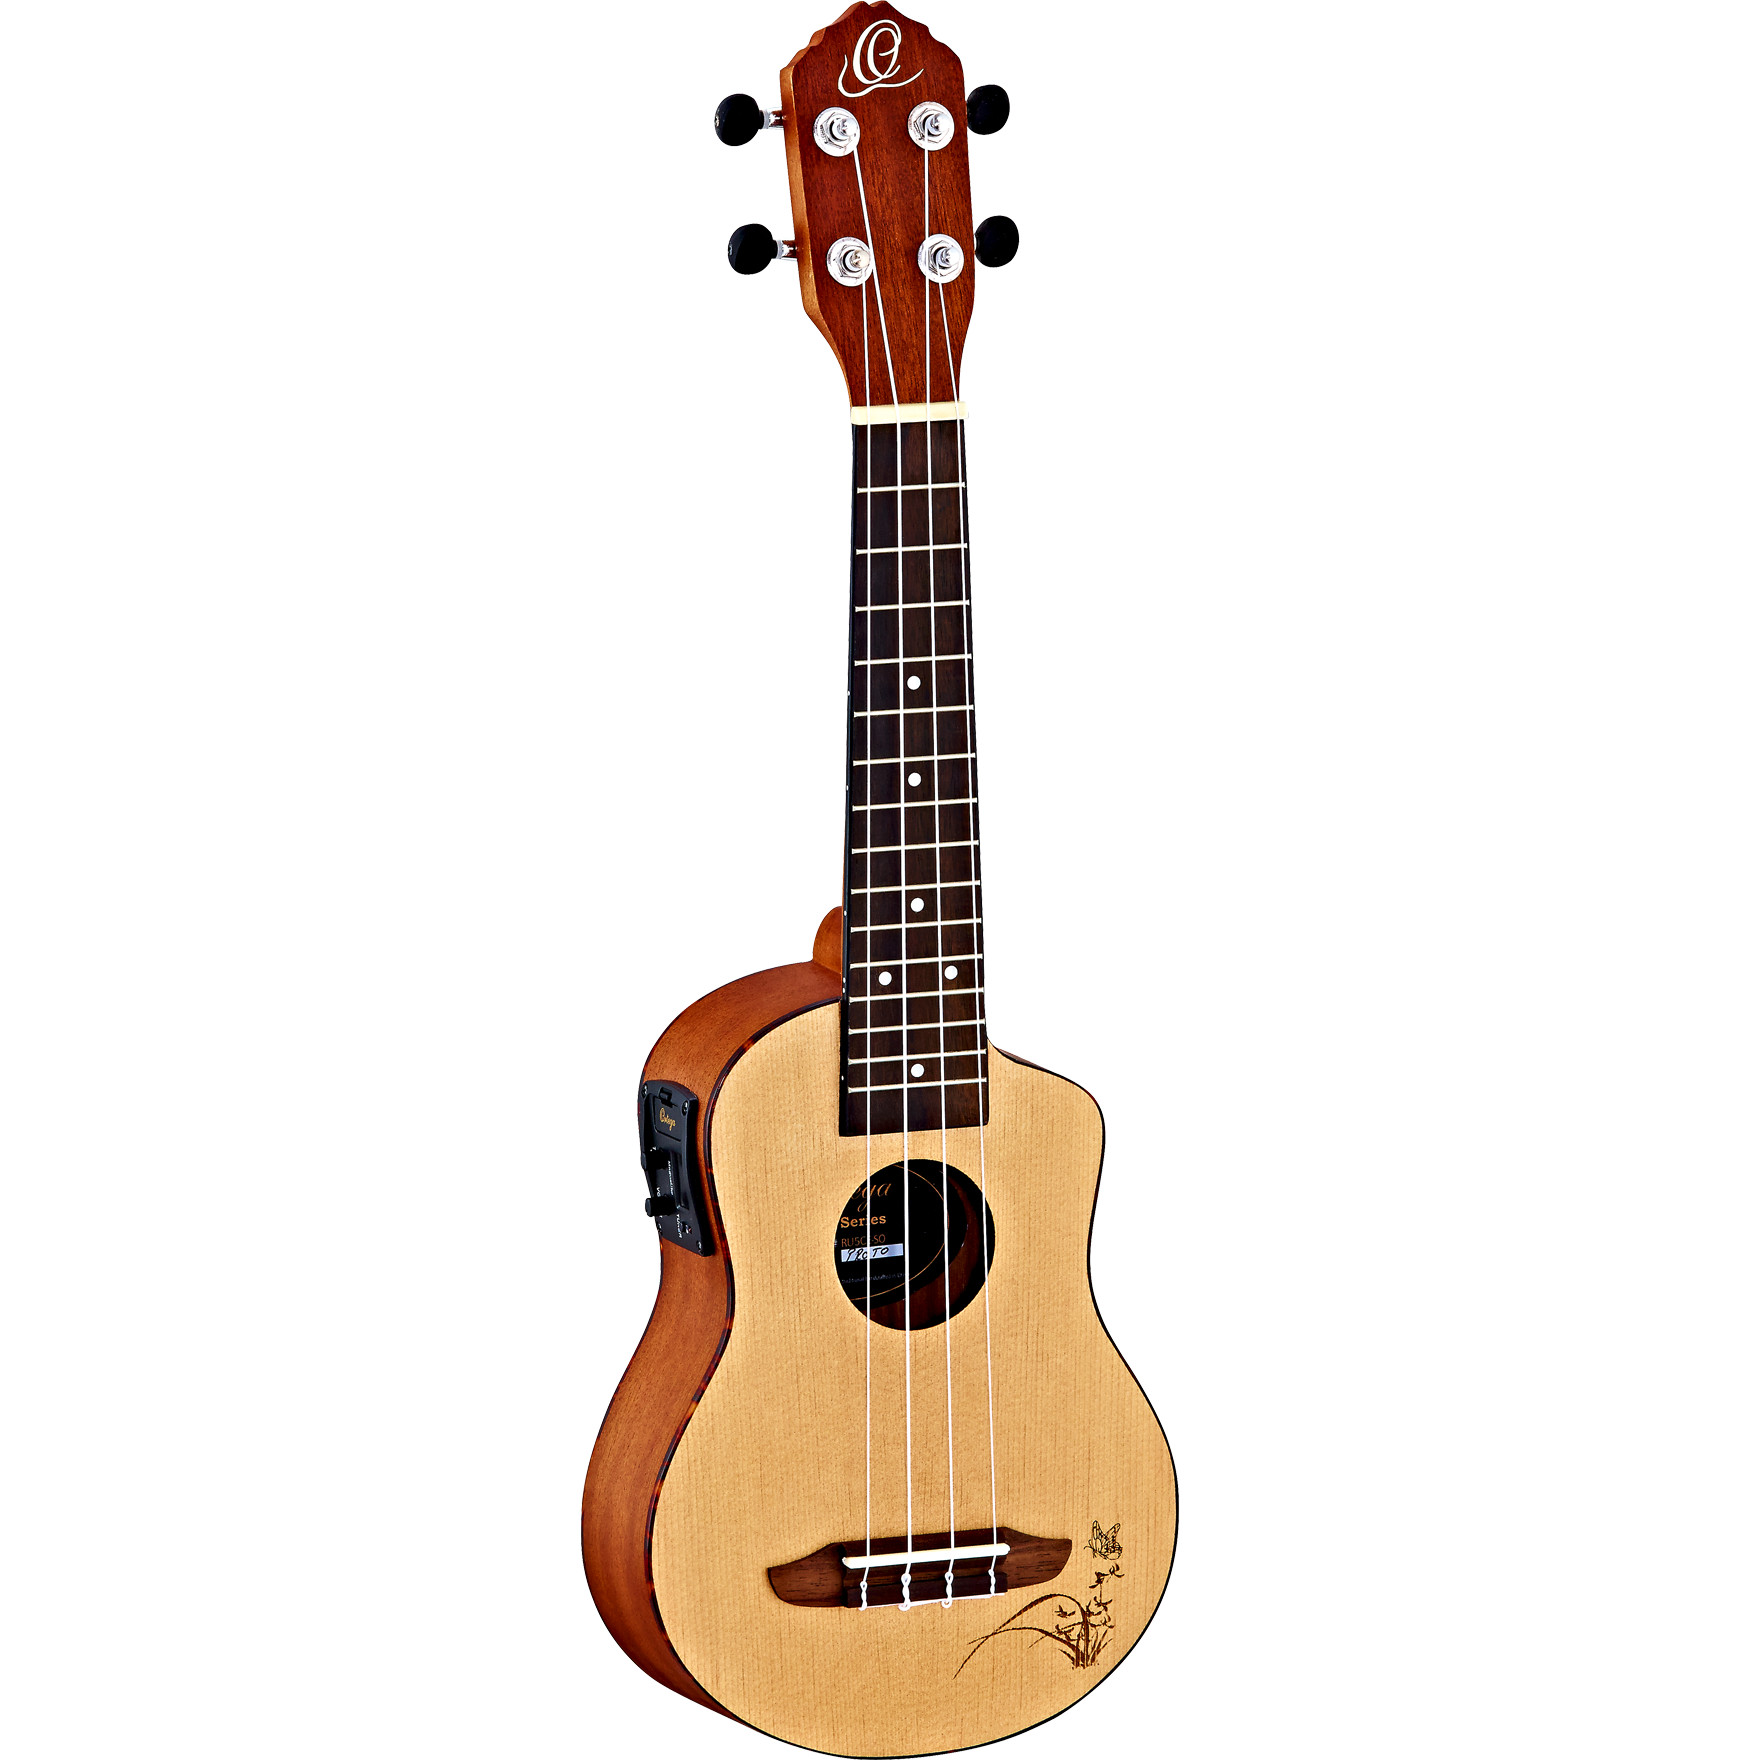 Ortega Bonfire Series RU5CE SO soprano ukulele